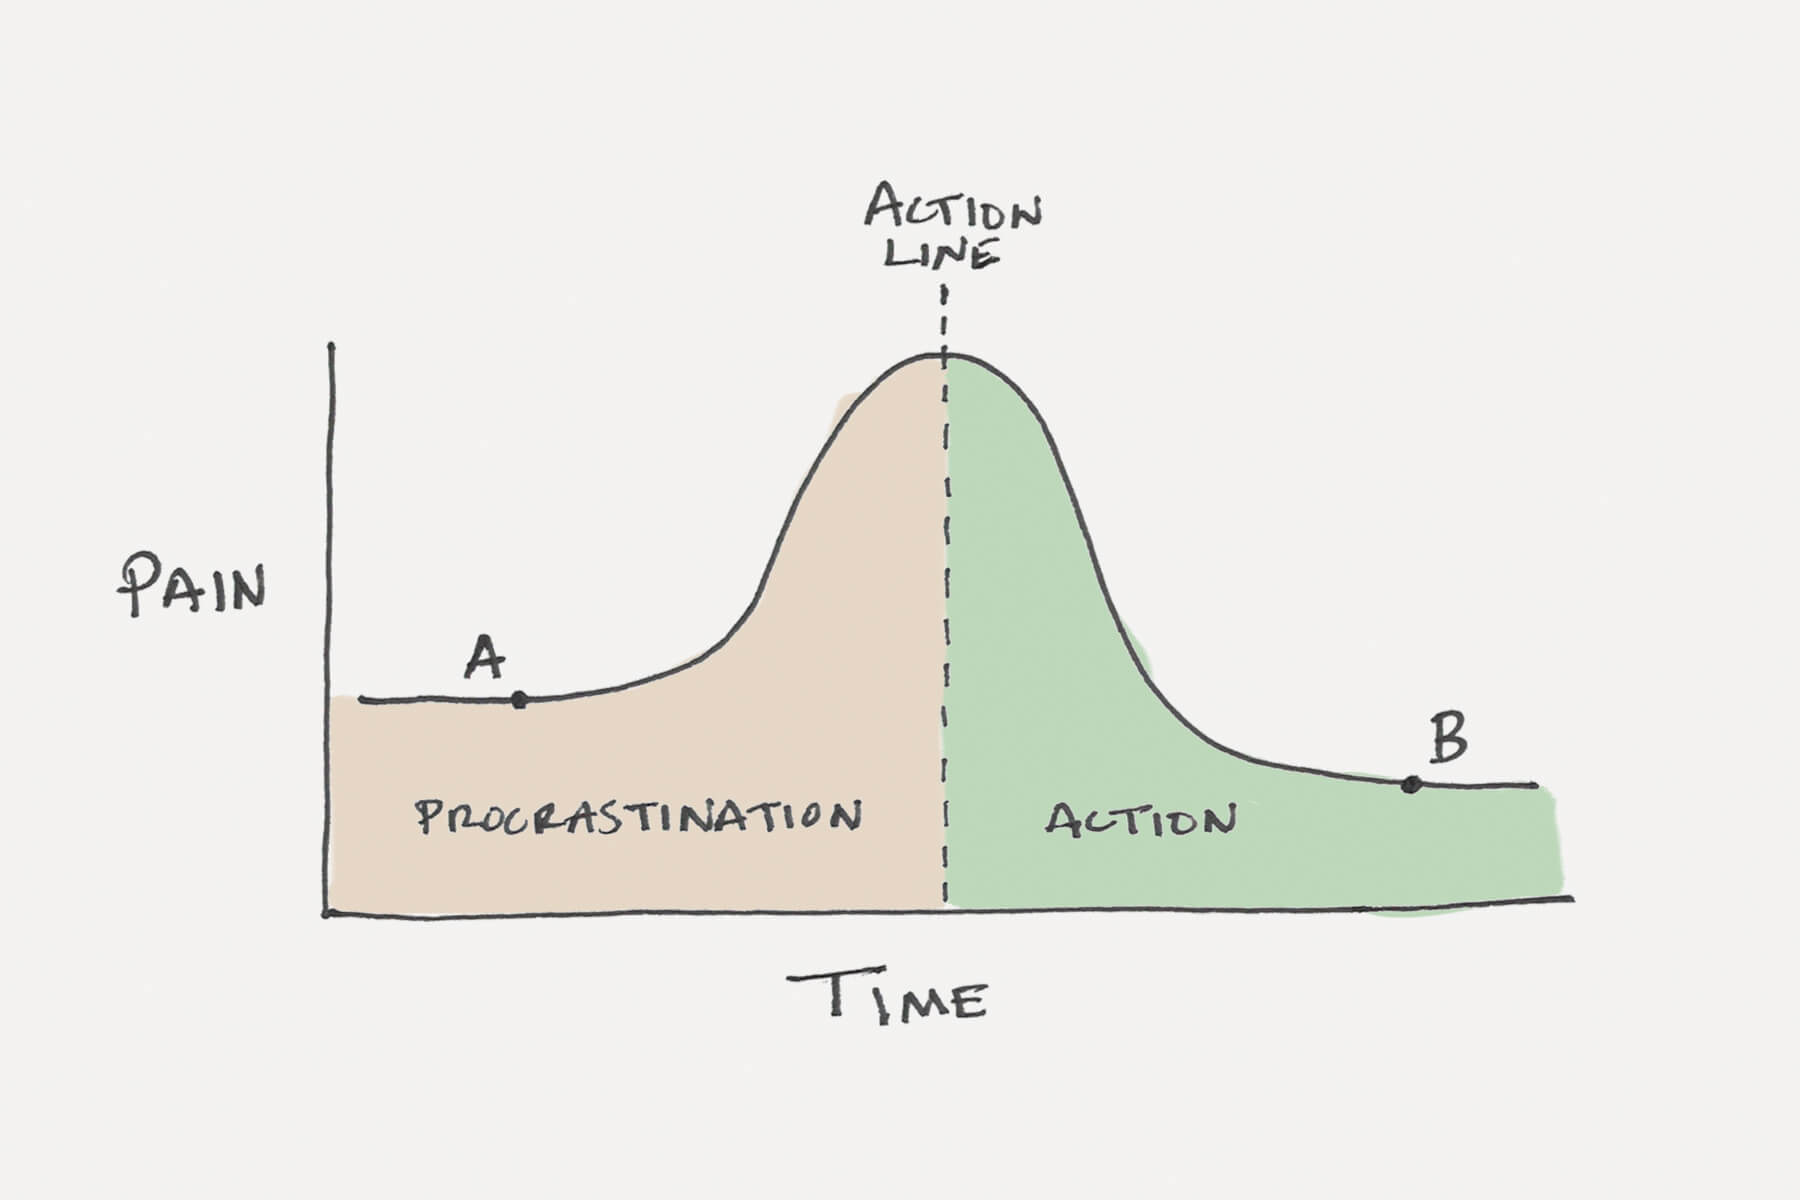 Procrastination: A Brief Guide on How to Stop Procrastinating